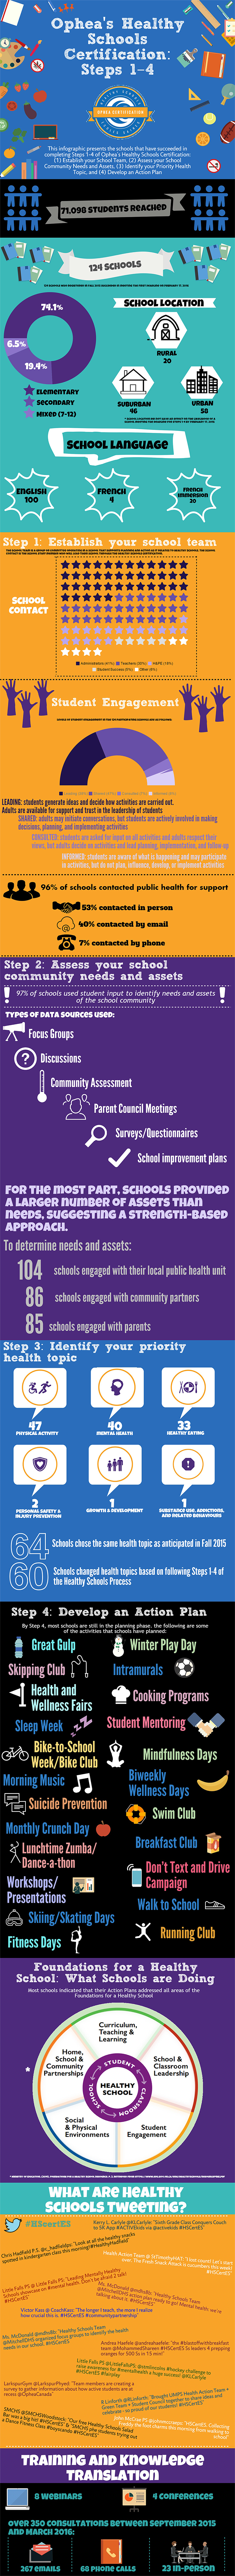 Infographic illustrating steps 1-4 of the Healthy Schools Certification process